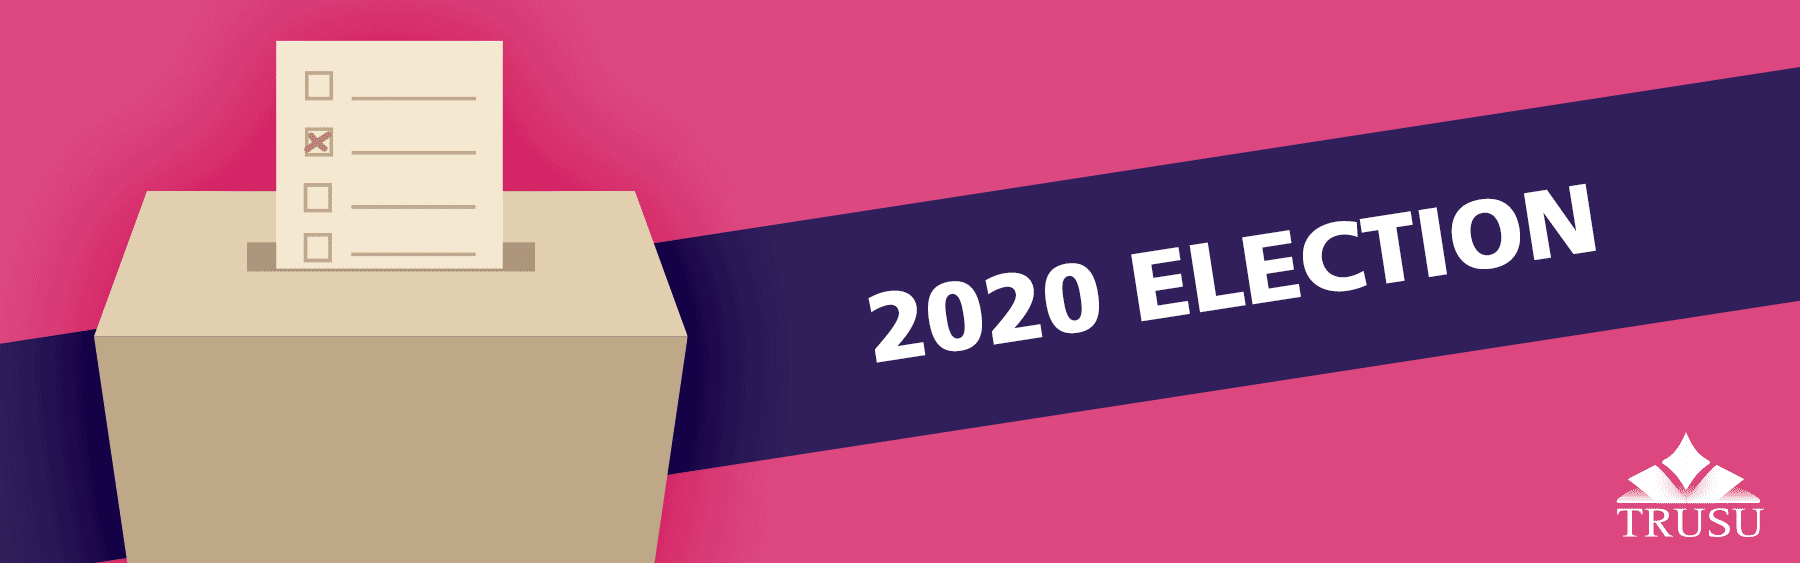 2020 Election to the TRUSU Board of Directors